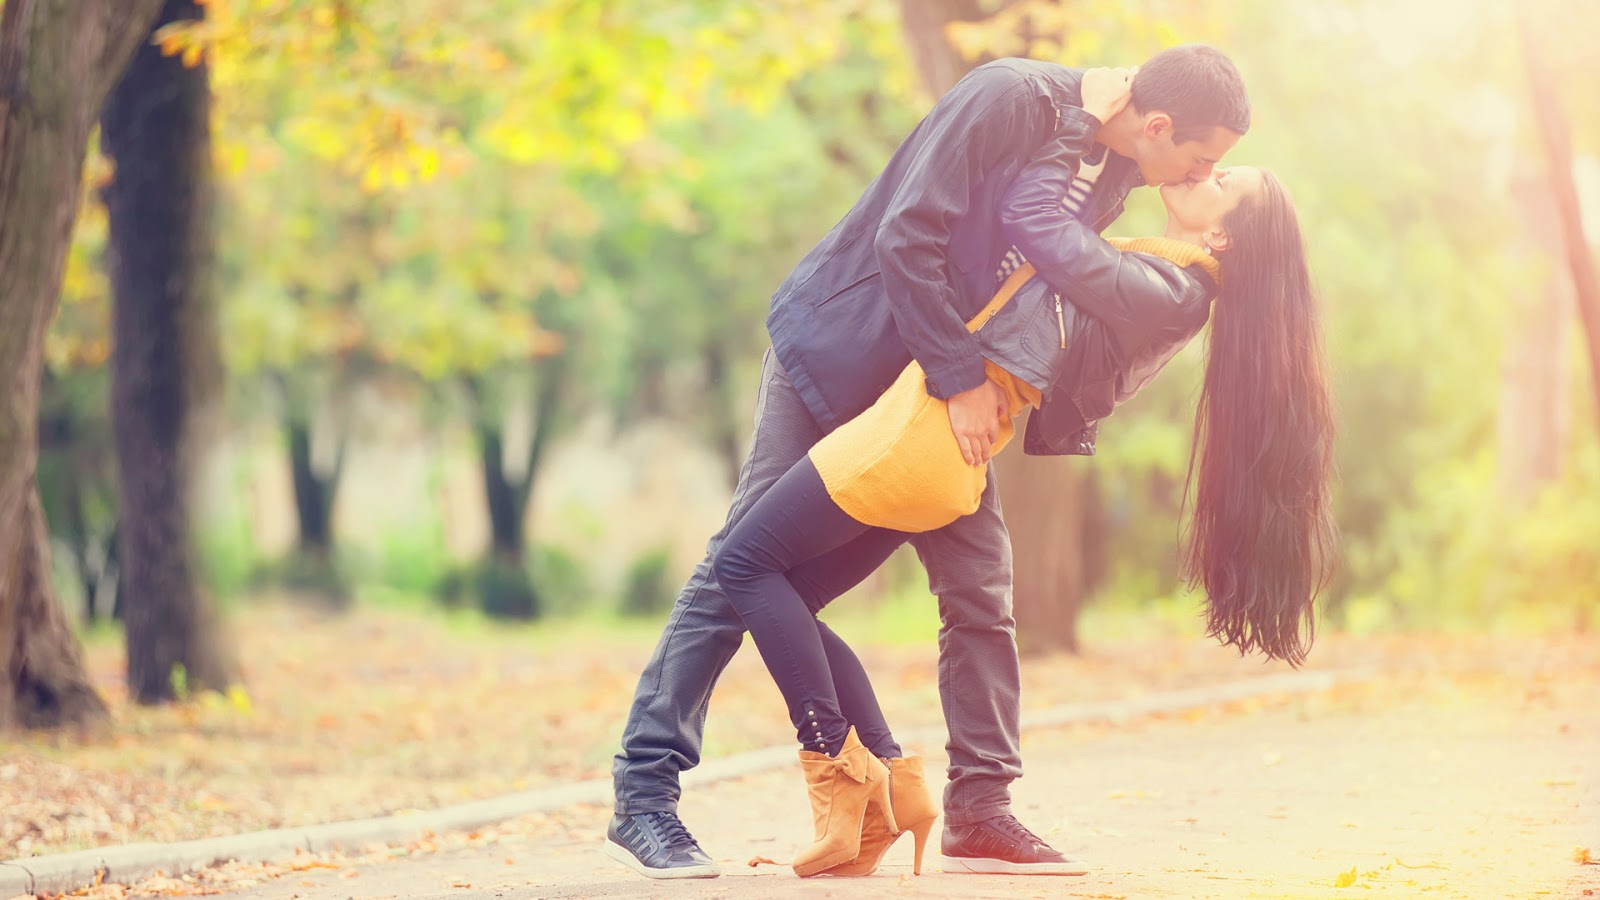 couple kissing wallpapers - photo #13